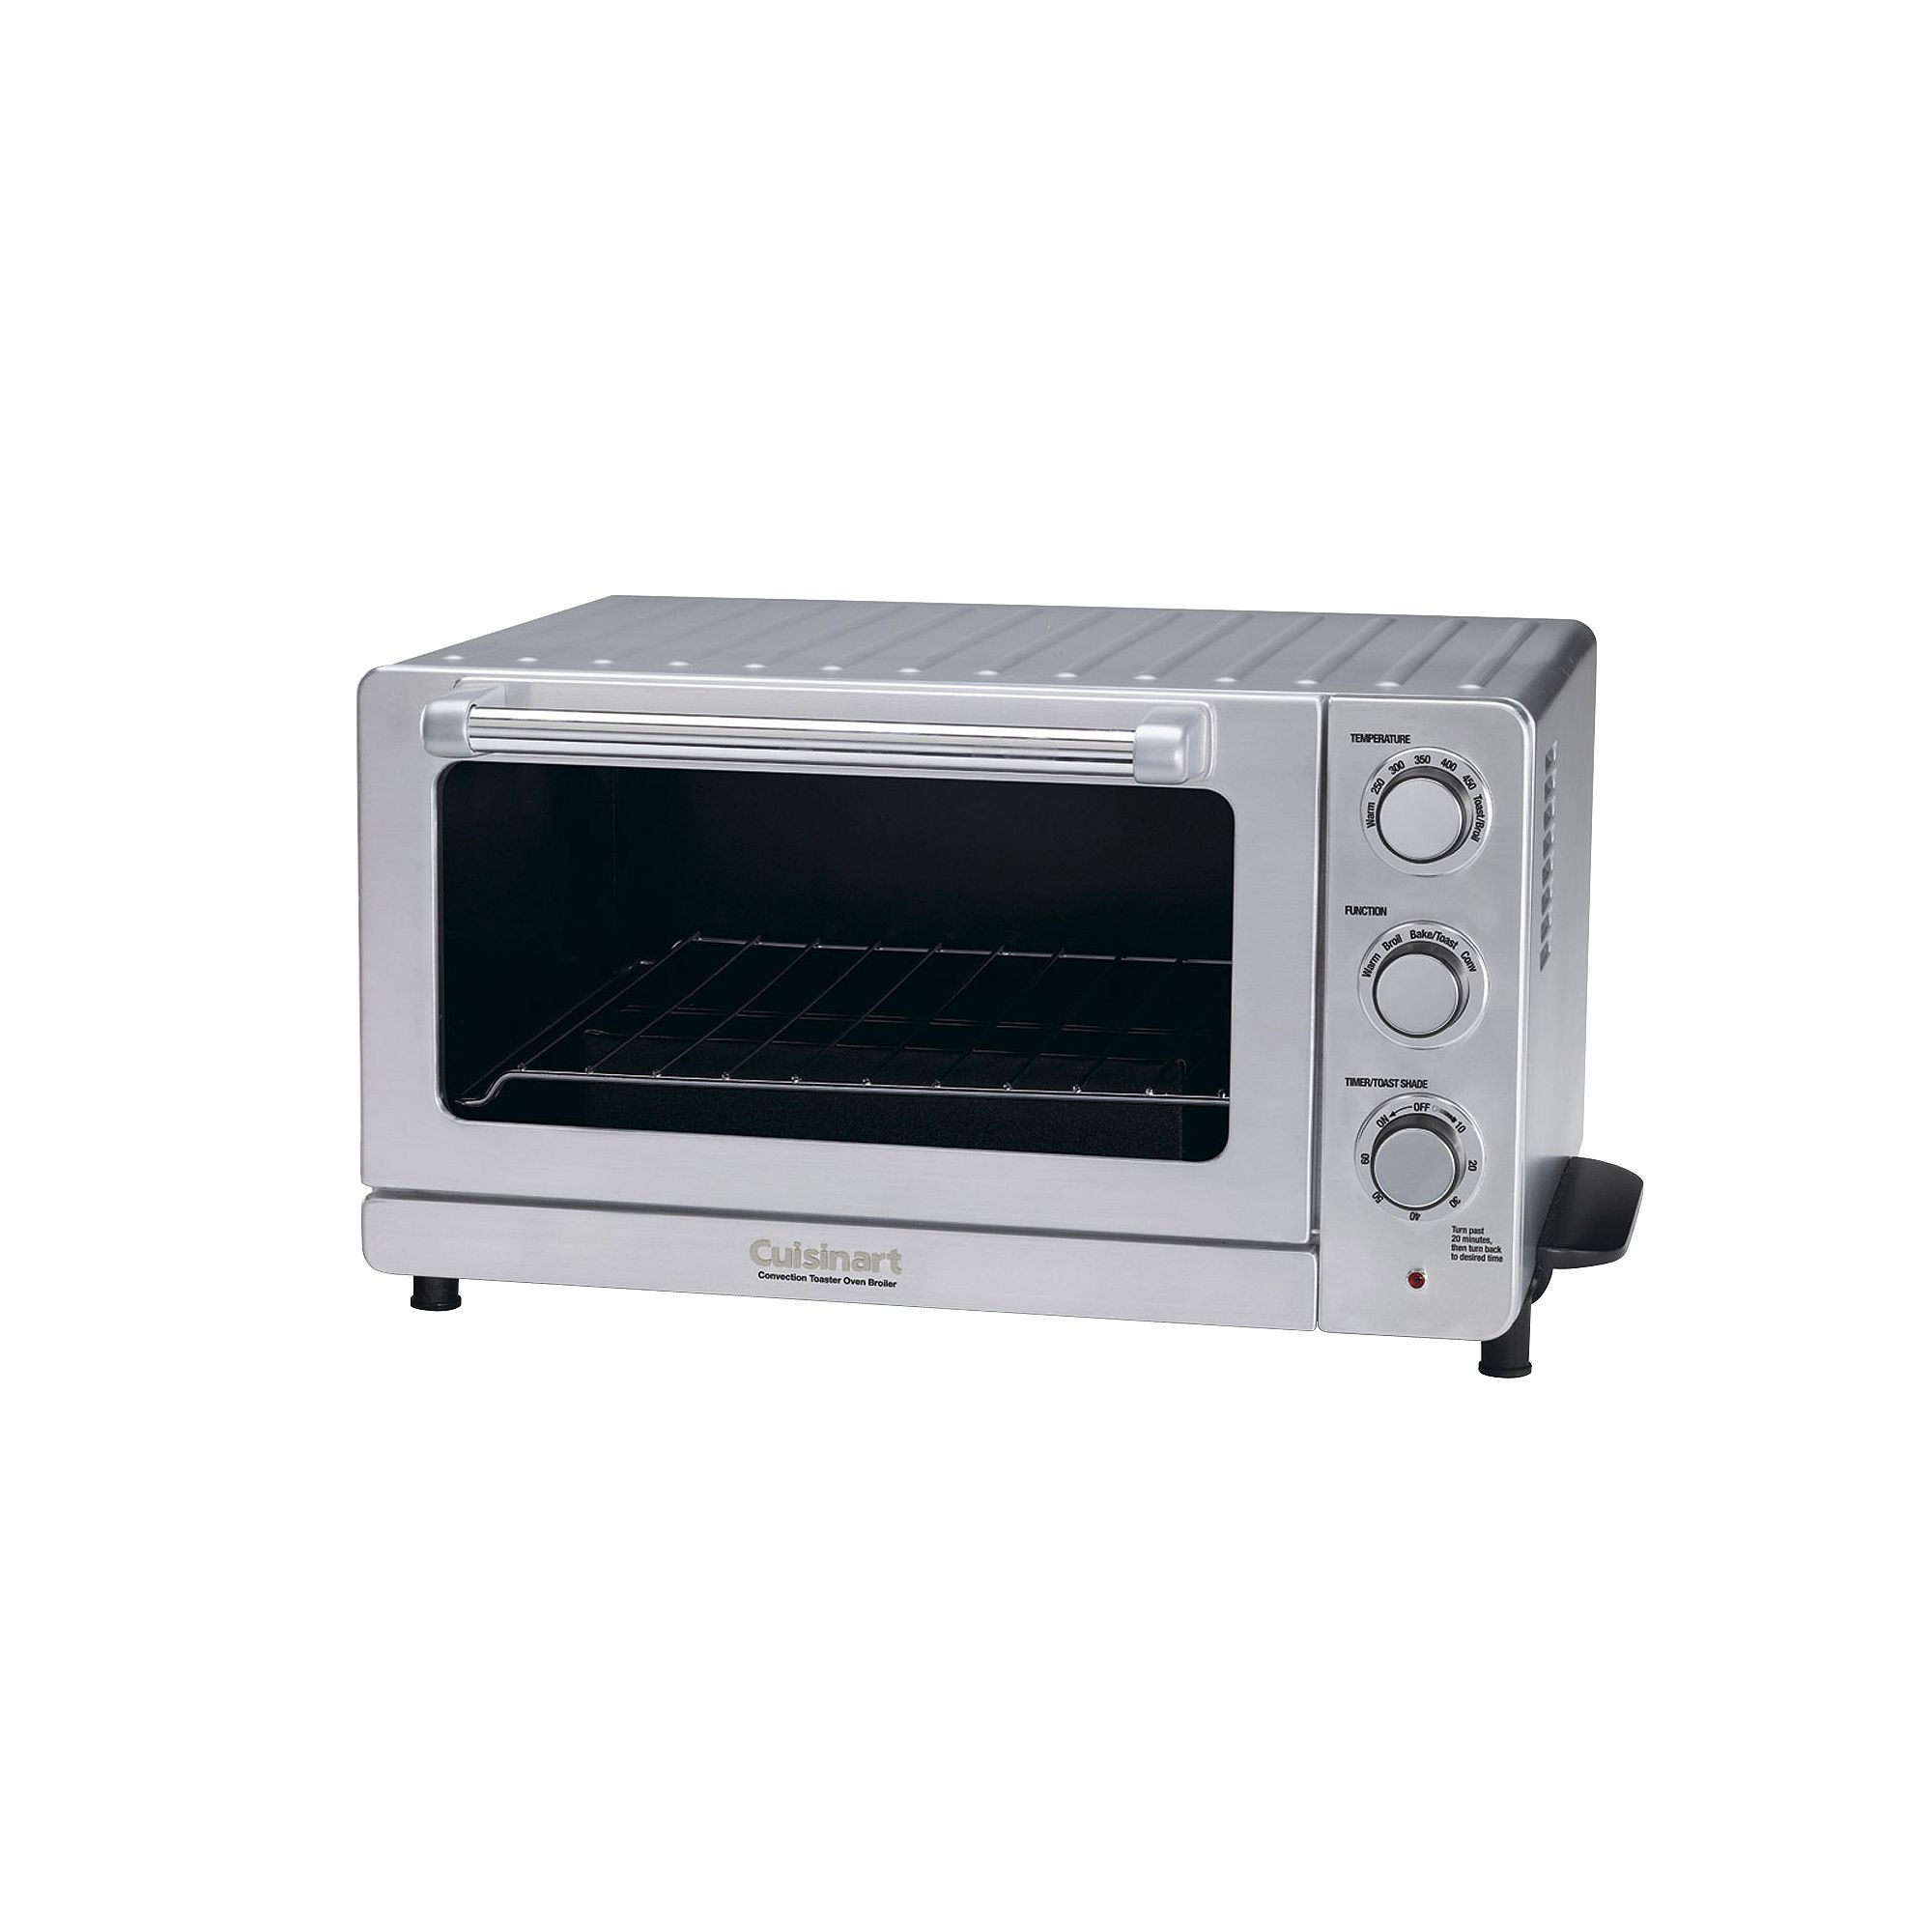 Cuisinart Convection Toaster Oven Broiler Stainless Steel Oven Toaster Countertop Oven